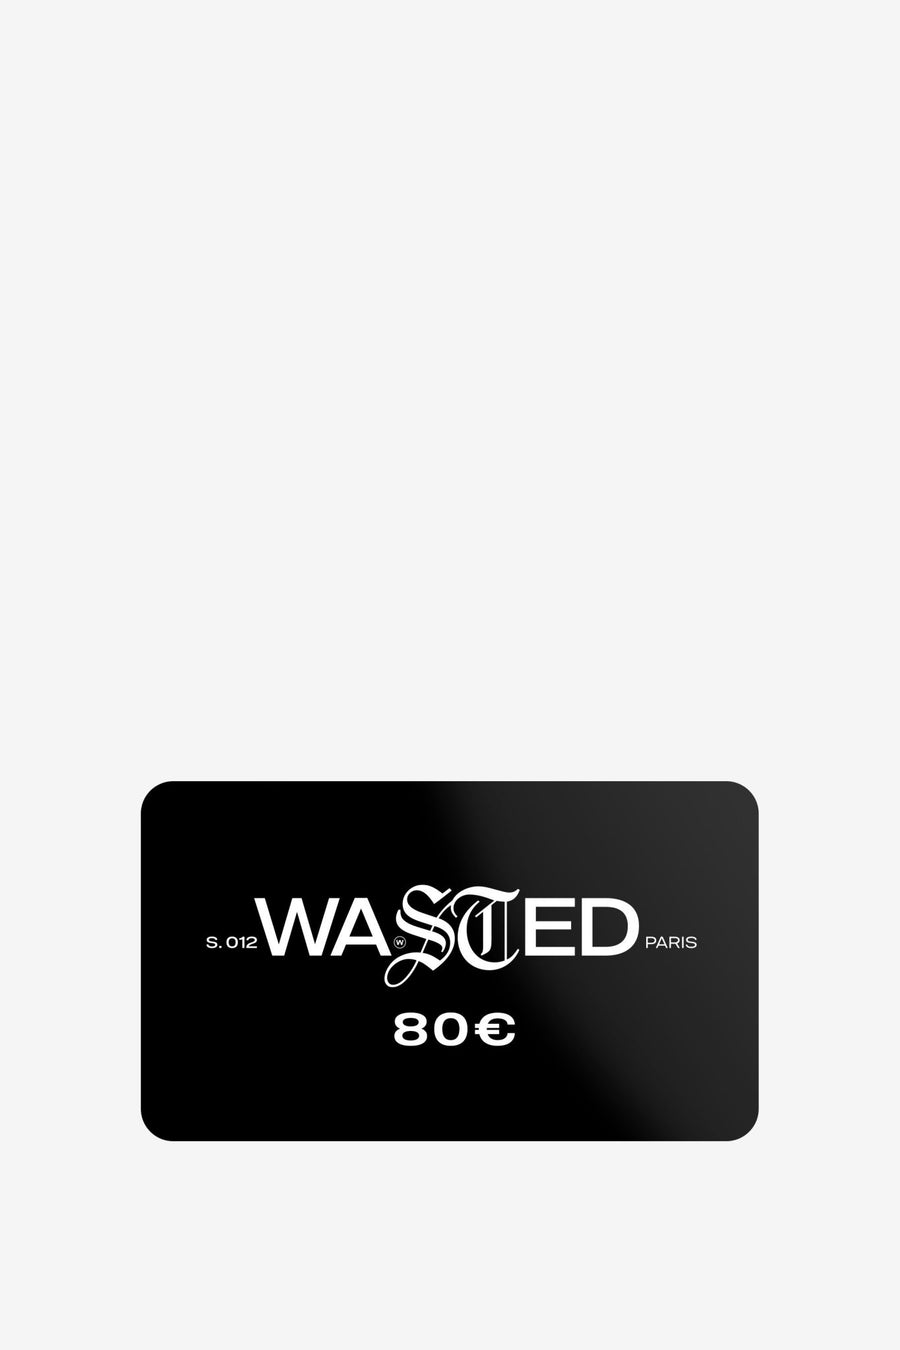 80€ de carte cadeau - WASTED PARIS